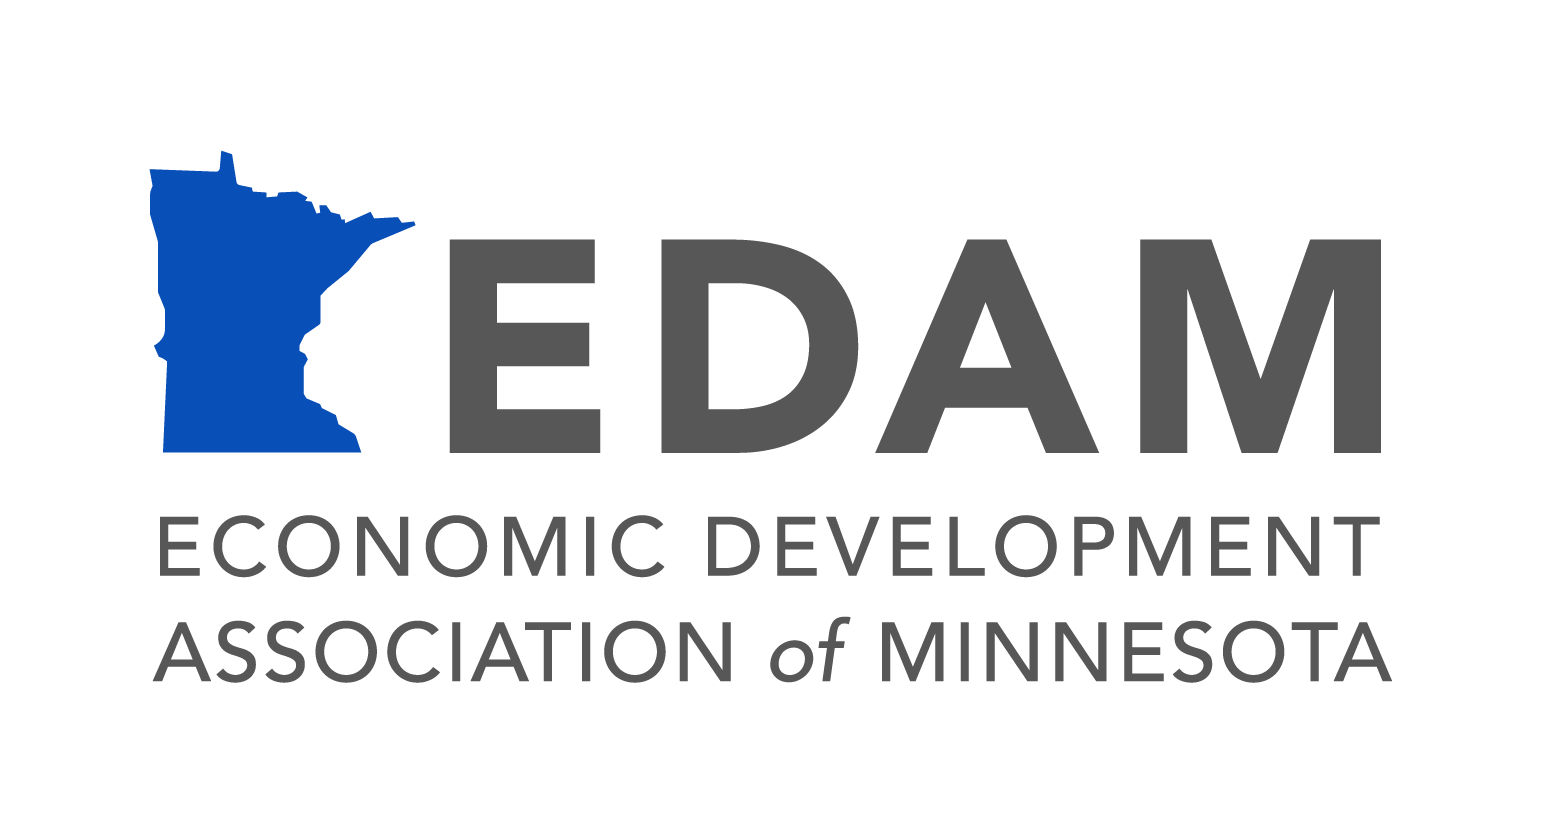 Economic Development Association of Minnesota